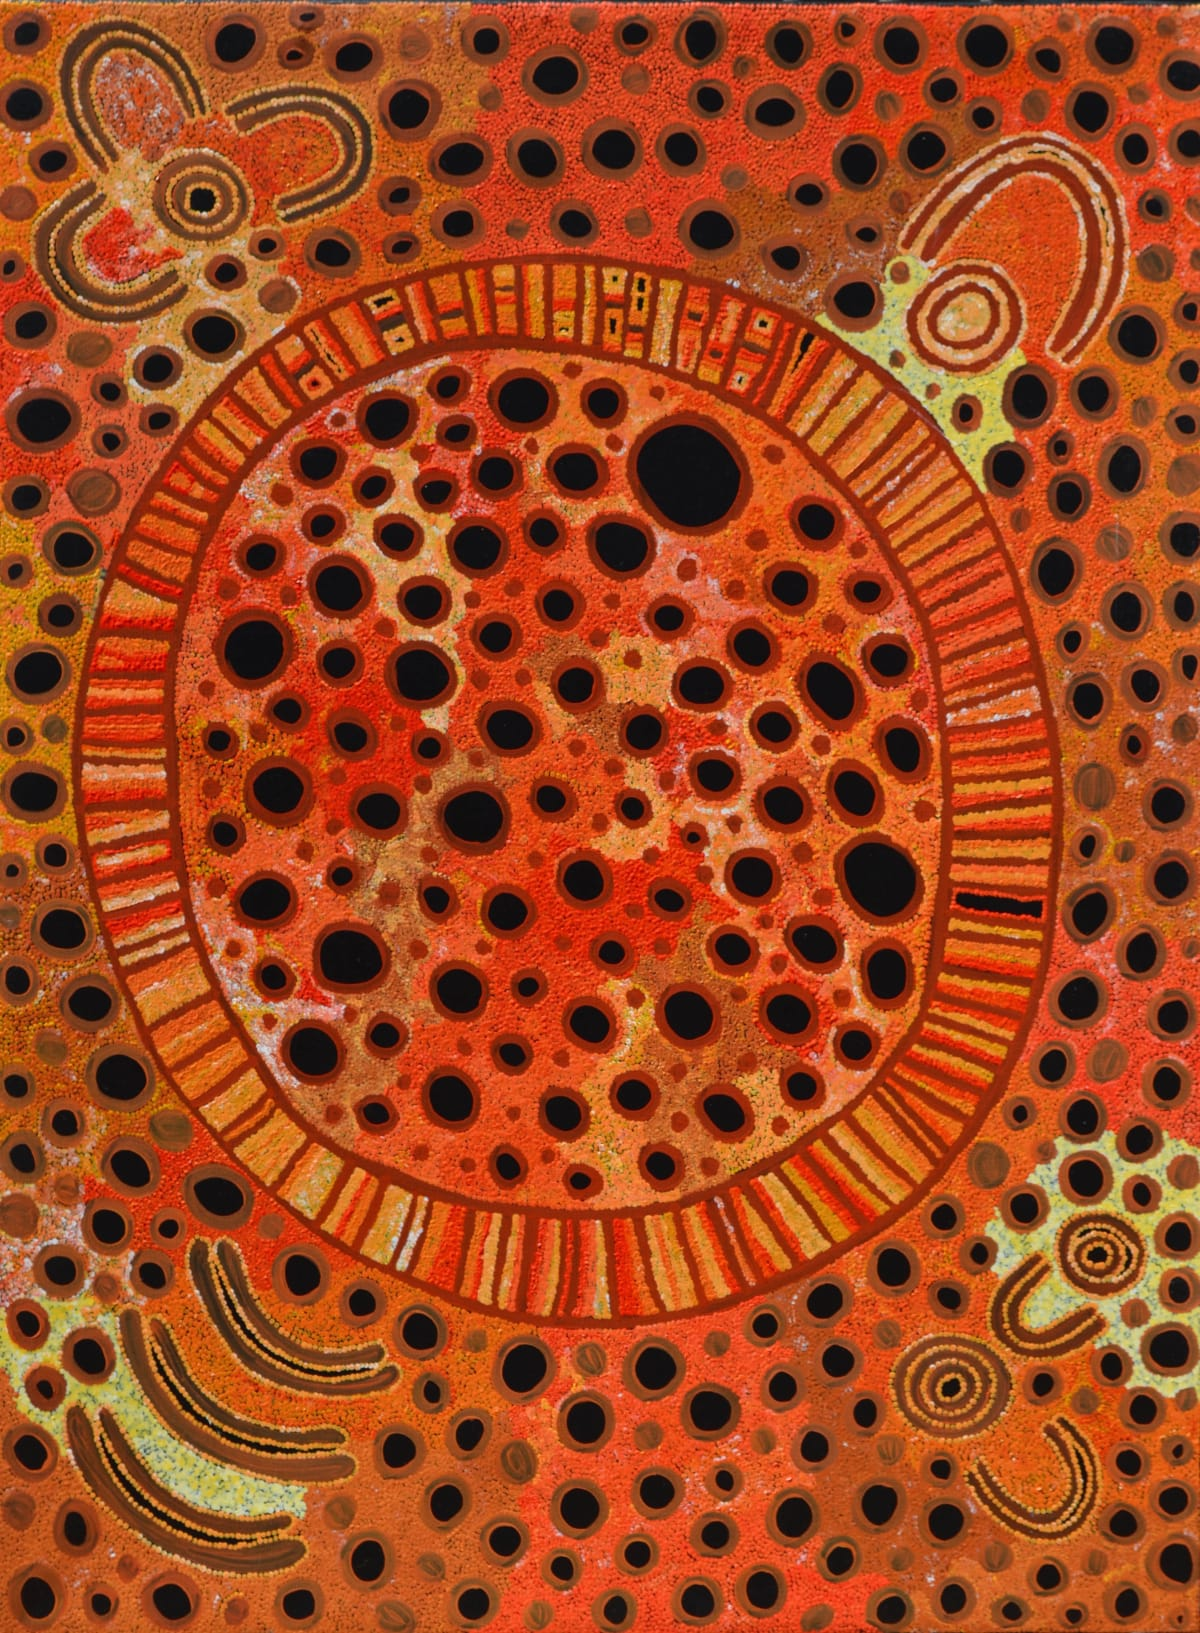 Alison Anderson The Kalinpinypa circle: My Design acrylic on linen 122 x 92 cm